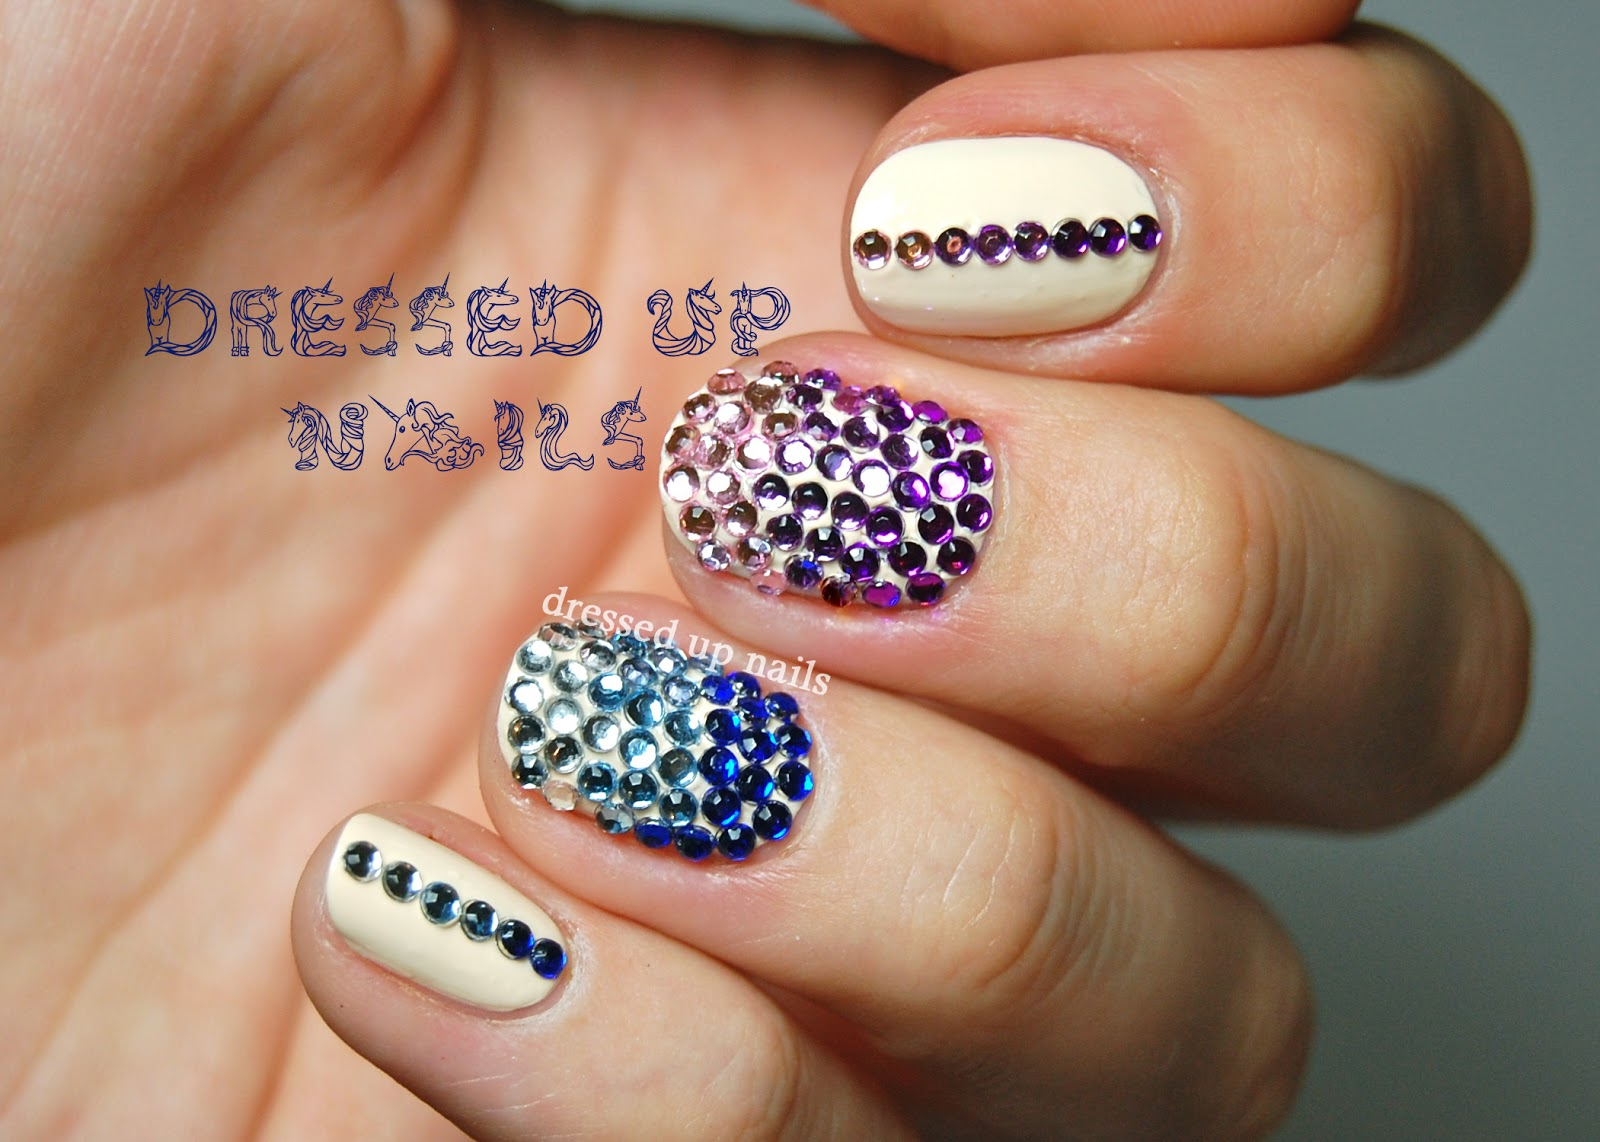 Nail Designs With Rhinestones | Nail Art Mystery